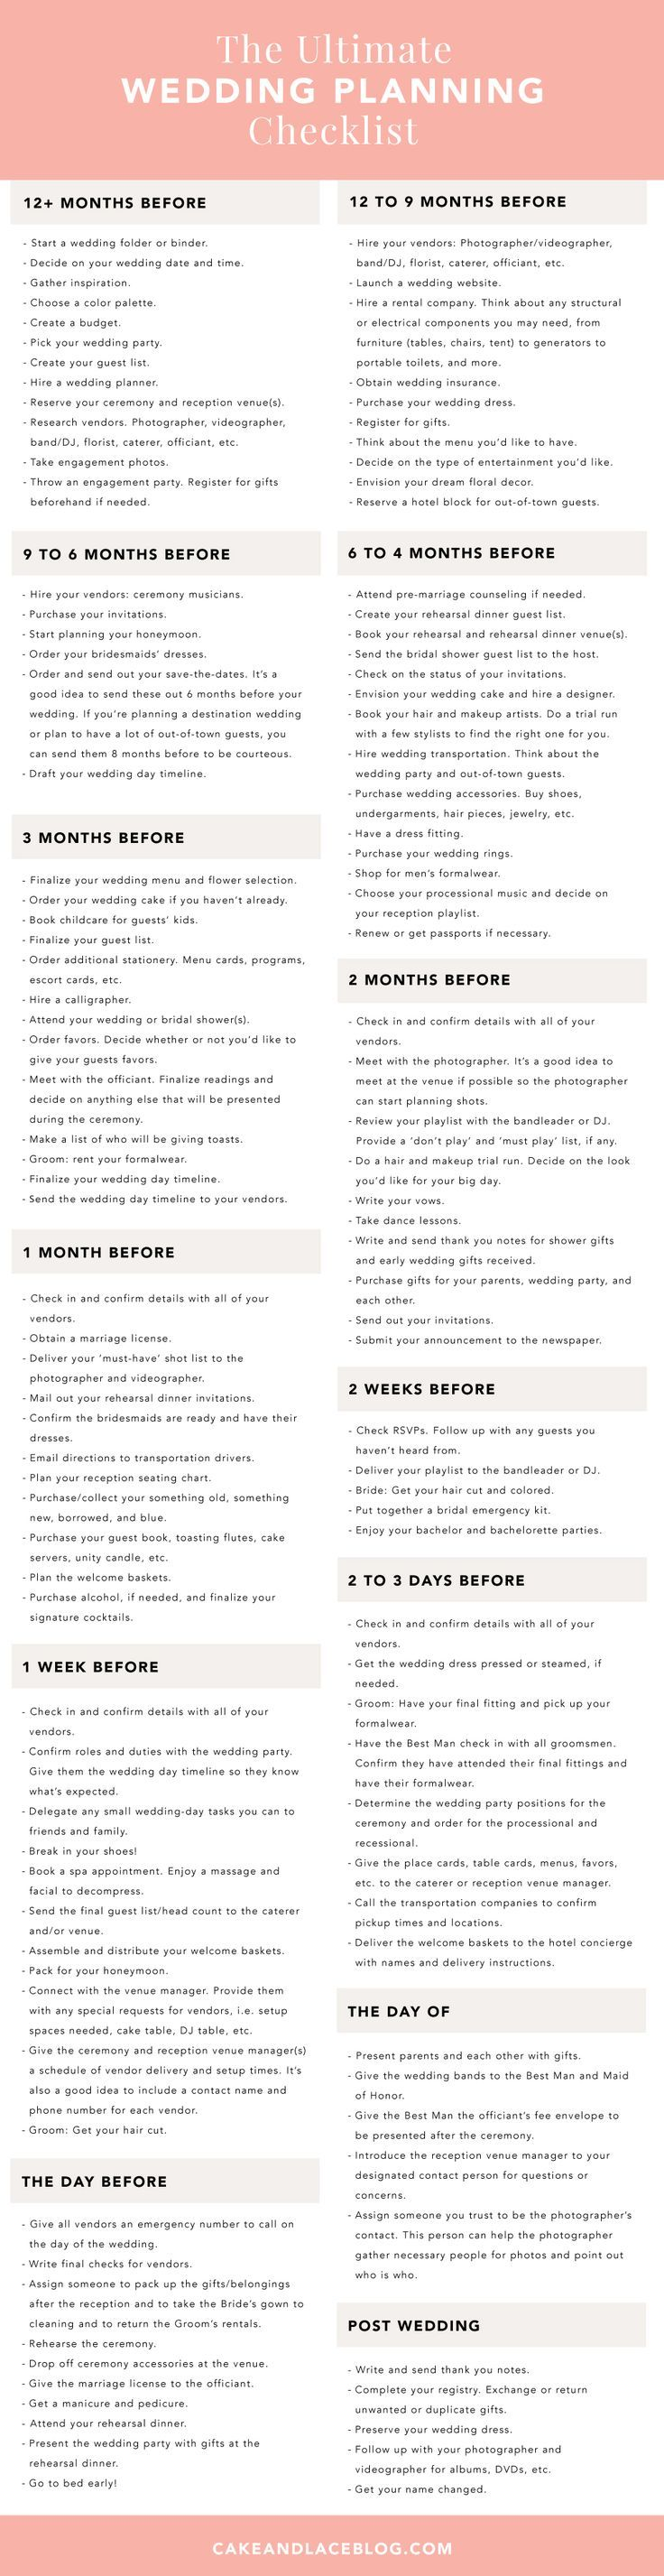 Best 25 Event planning checklist ideas on Pinterest